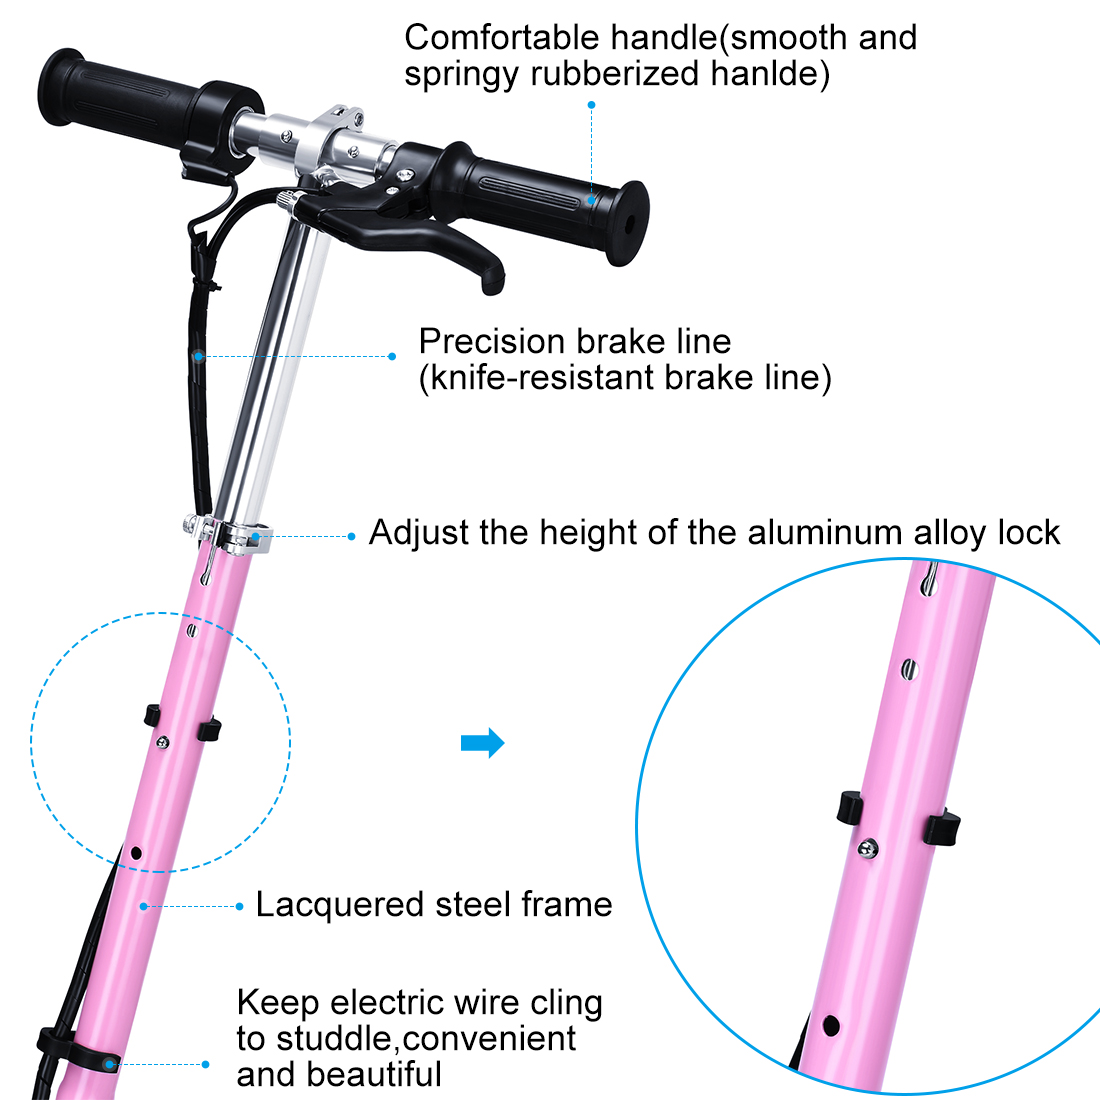 Sportsman Starter Wiring Contemporary Picturesque Pink Www Diagram For Motorized Bicycle Maxtra Astm Approved Electric Scooter Max Weight Capacity Bike Removable Seat Black 1100x1100